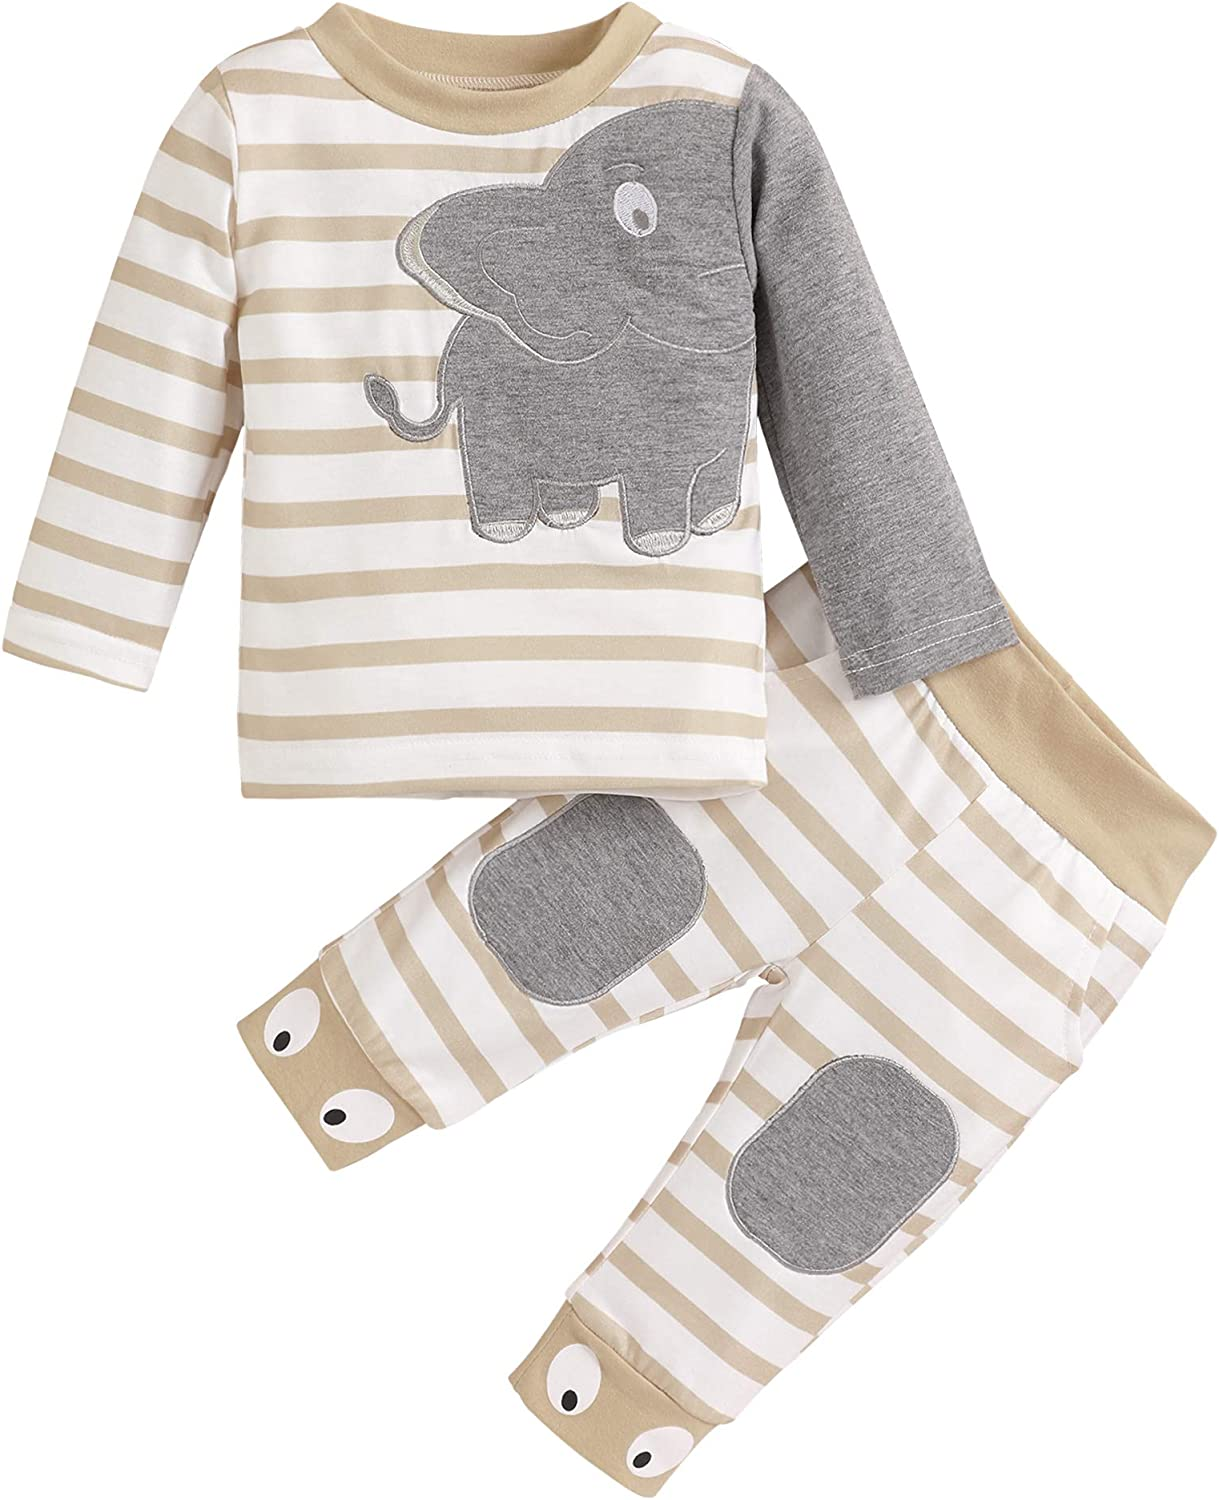 Infant Toddler Boy Clothes Elephant Printed Long Sleeve Sweatsuit and Pants Outfit Set